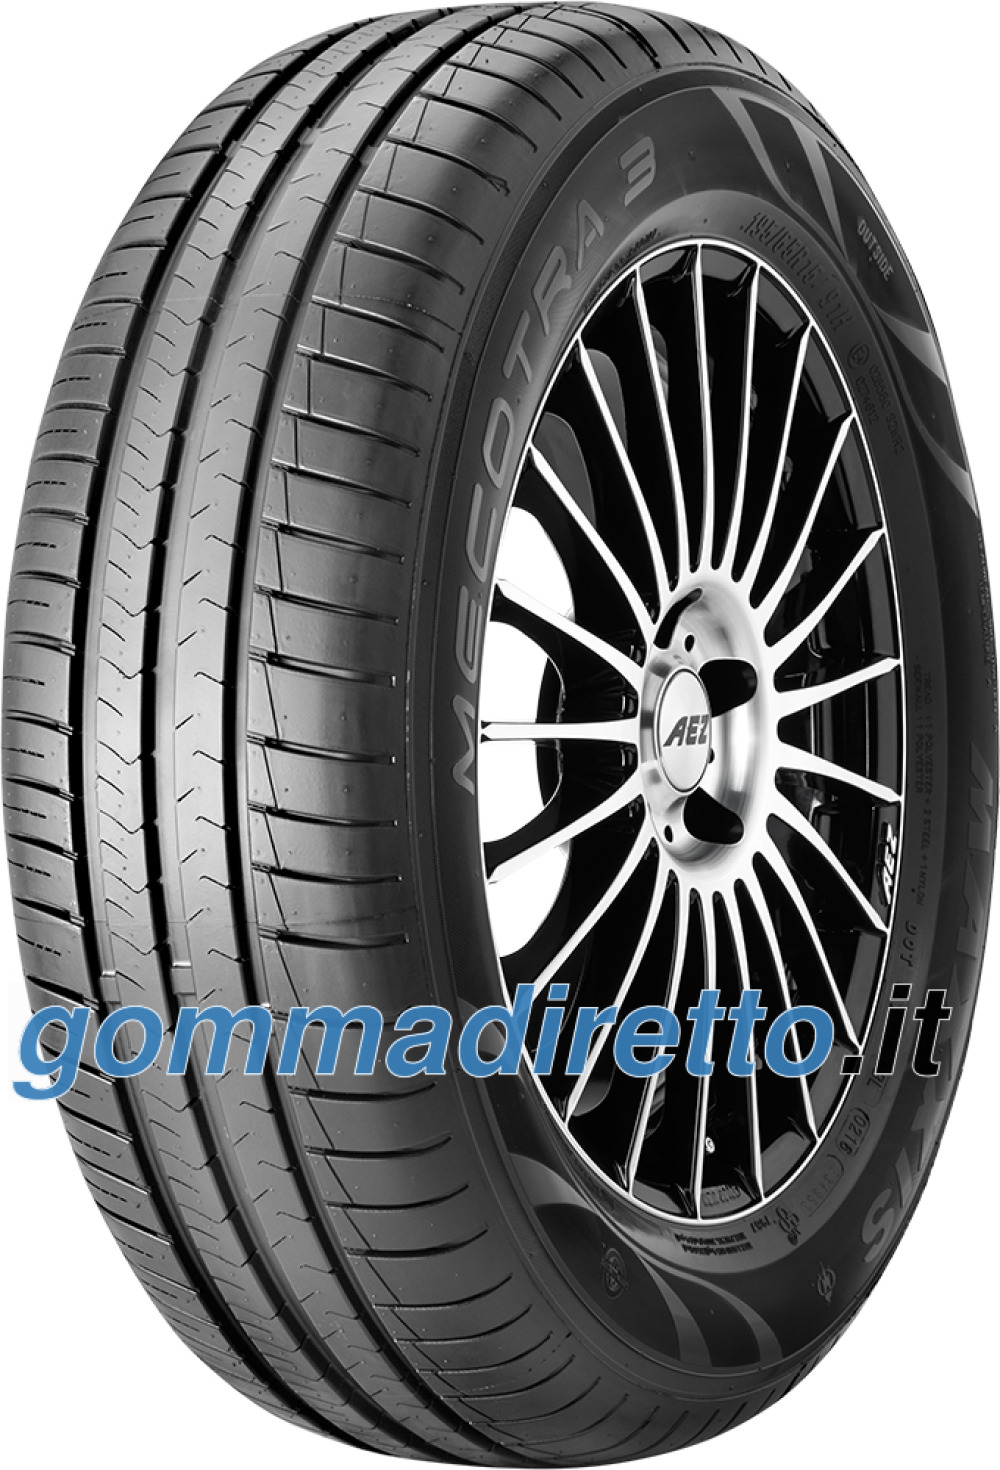 Image of Maxxis Mecotra 3 ( 155/70 R13 75T )